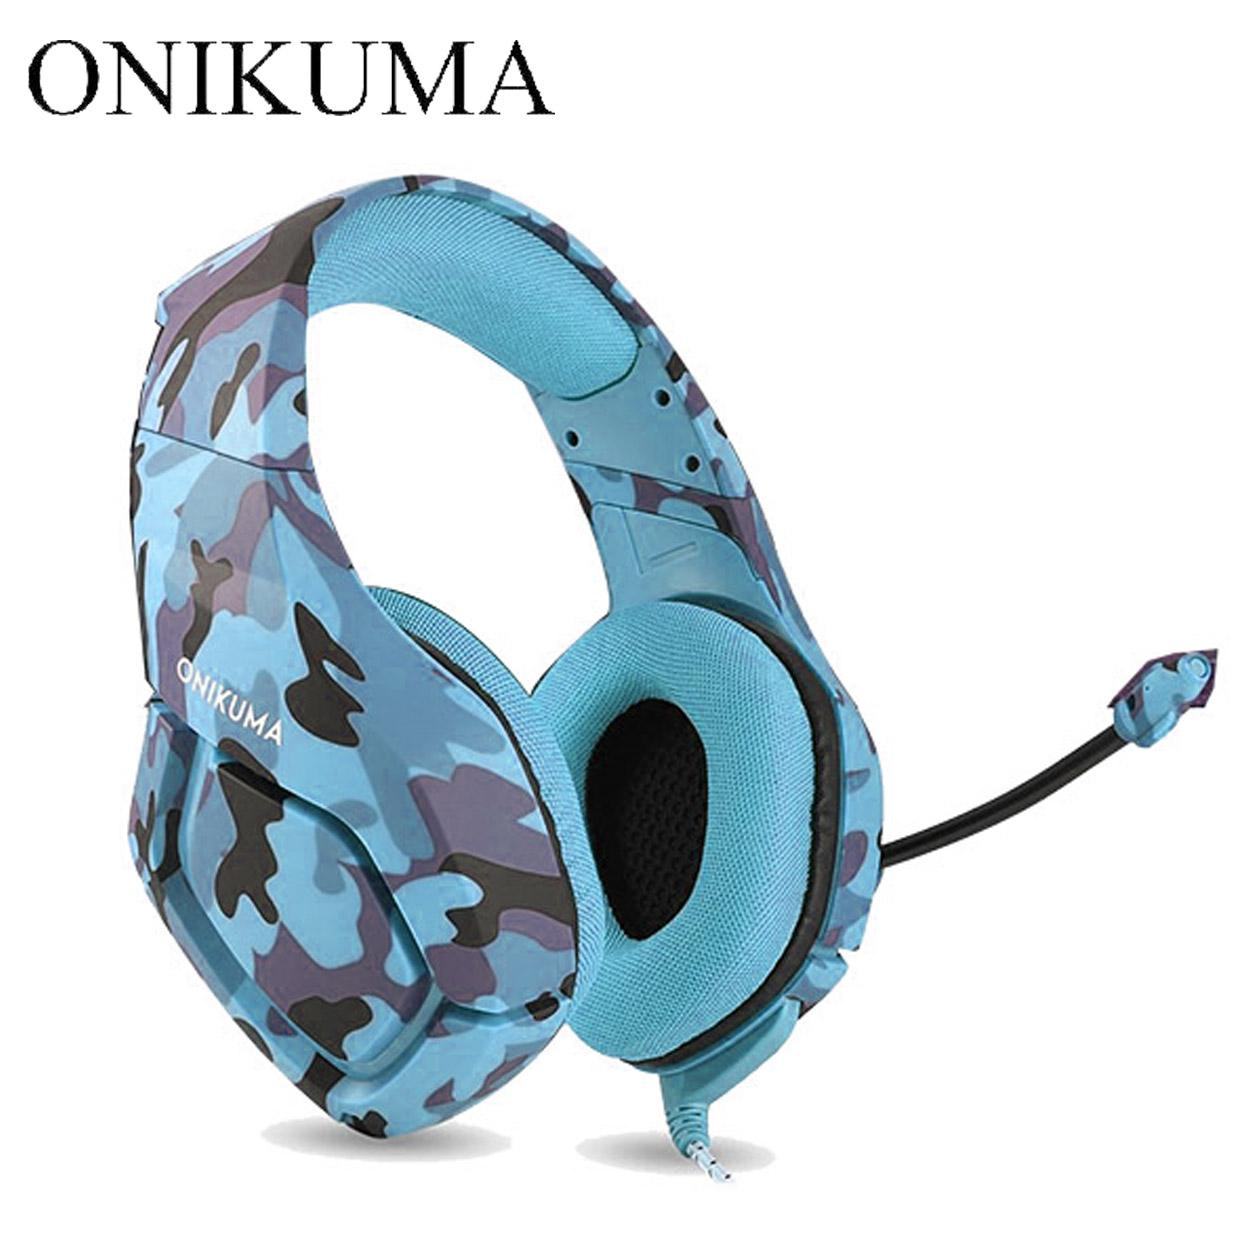 e9ee0f4a3be Product details of Onikuma K1-B Stereo Gaming Headphones with Mic ( Camouflage)